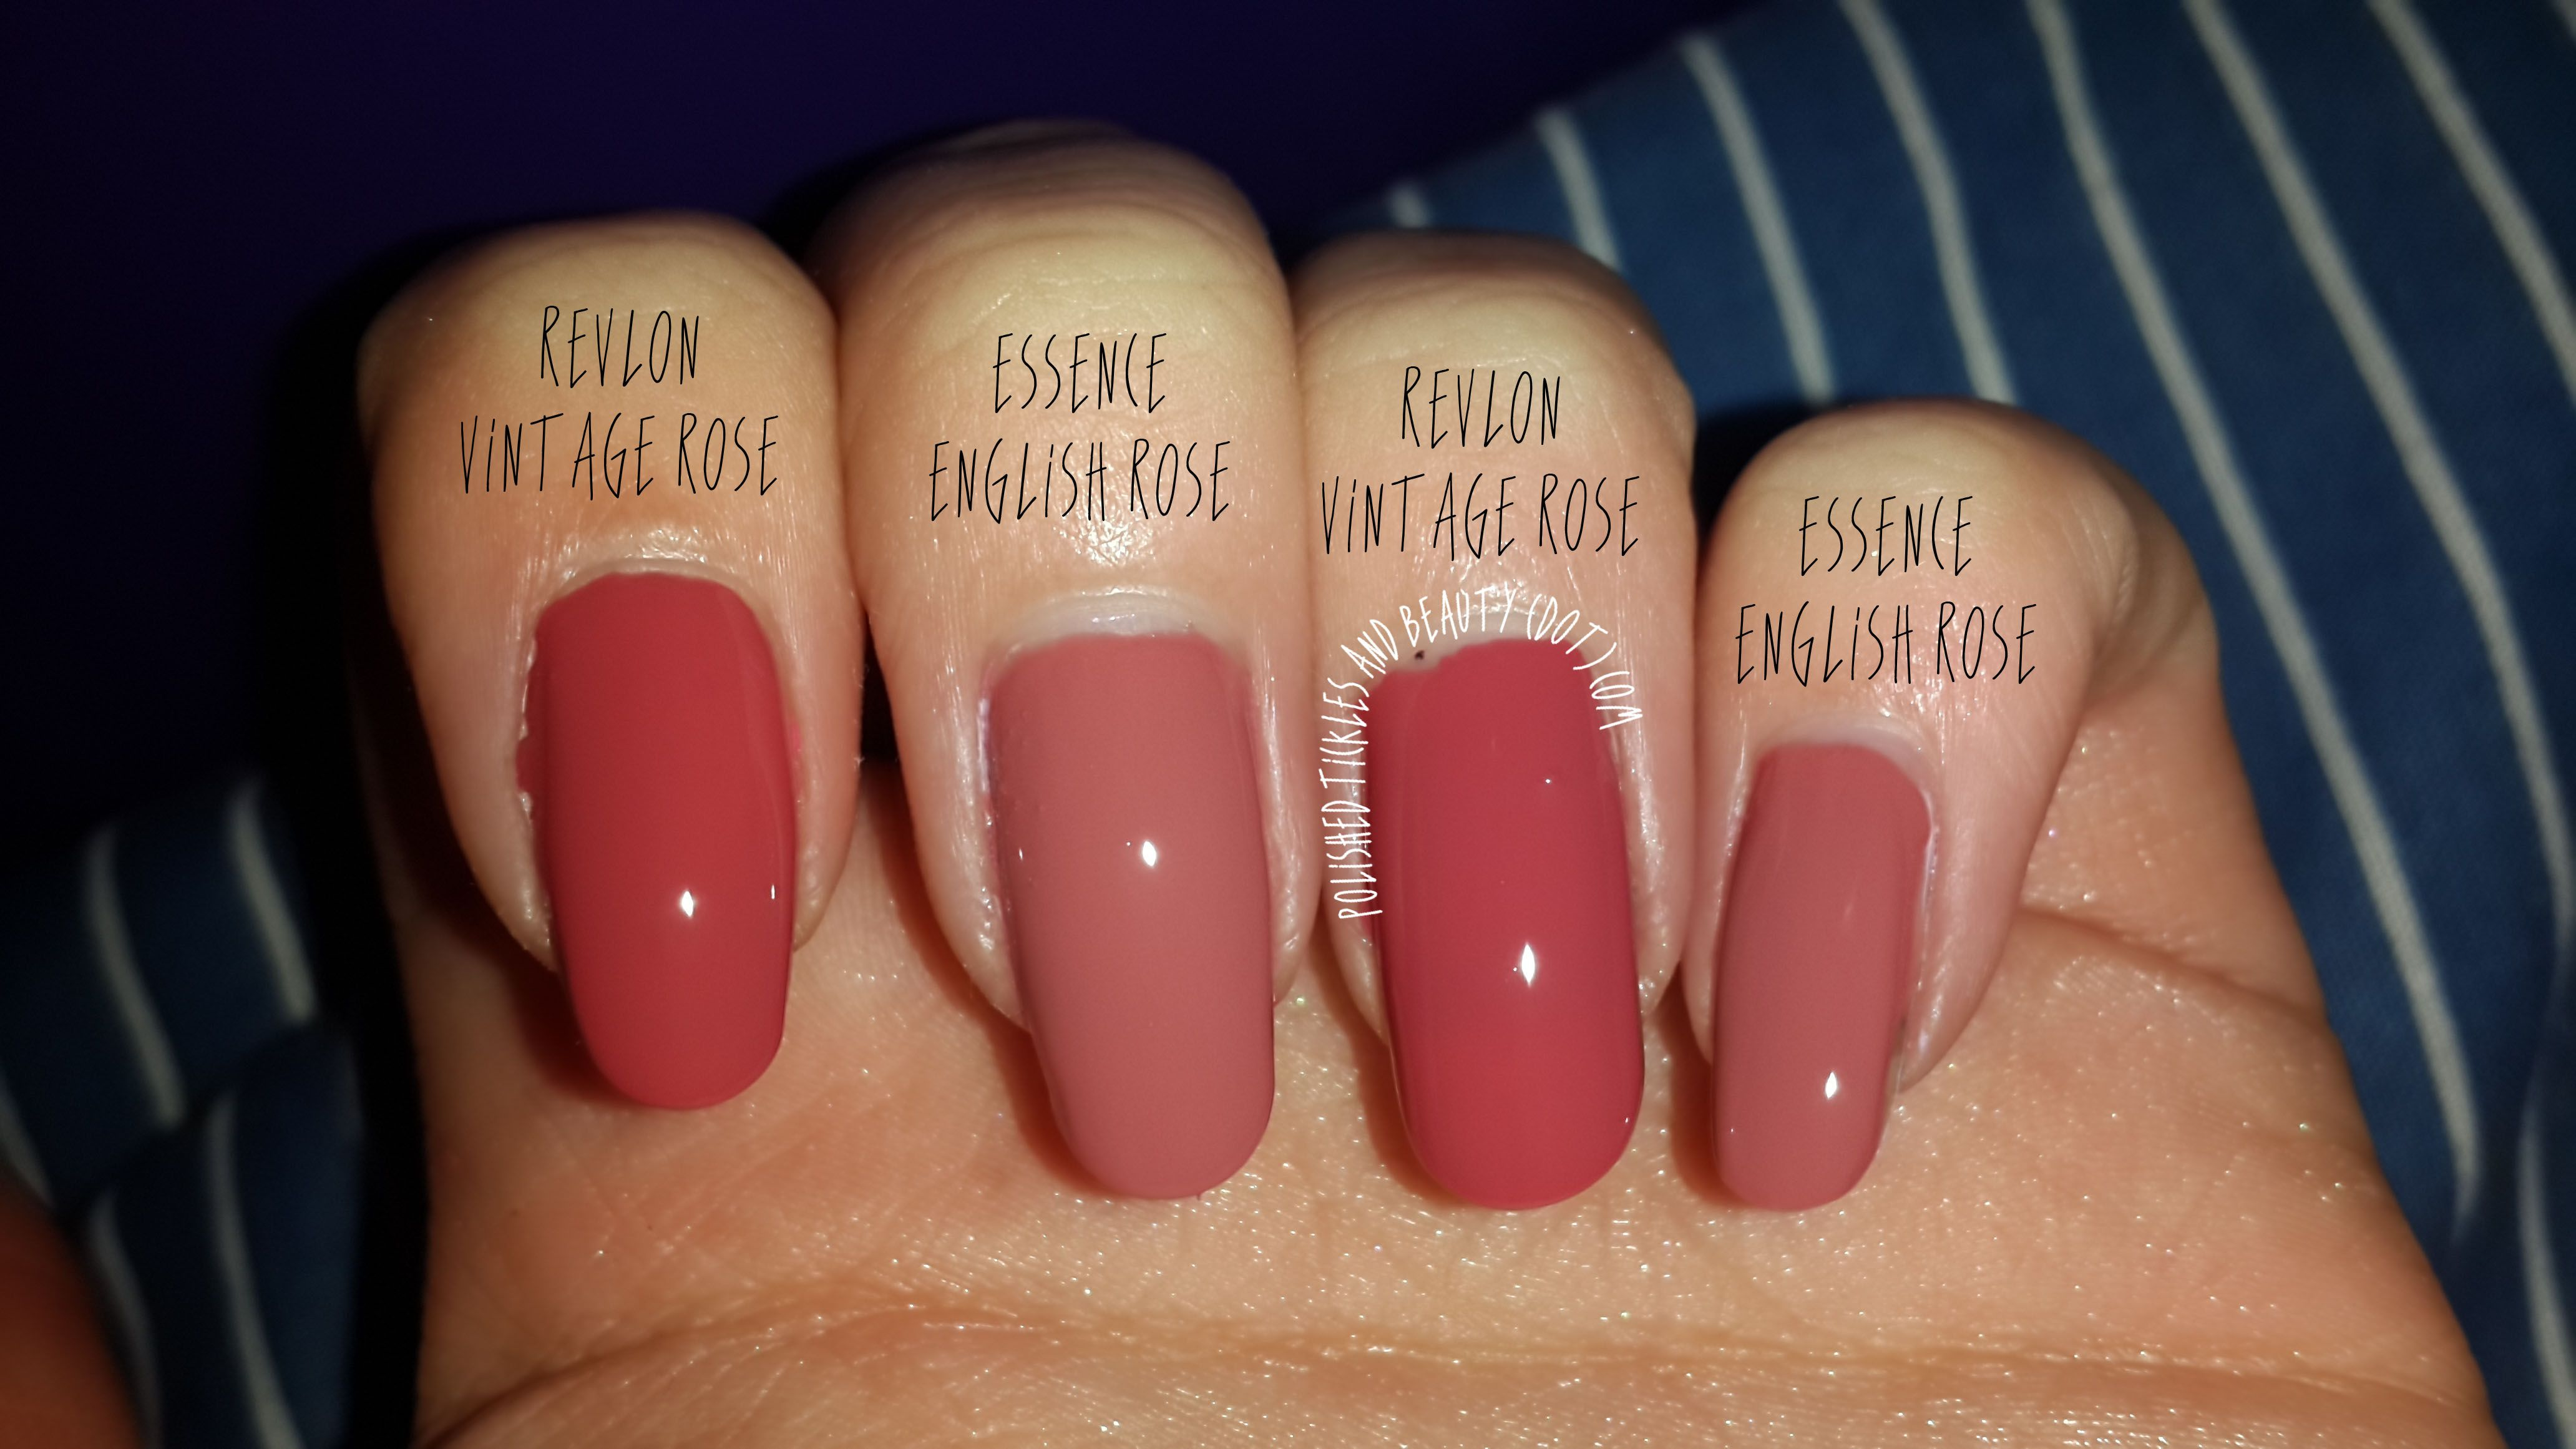 Revlon Vintage Rose Vs Essence English Rose | Nails | Pinterest | Nail Polish Colors